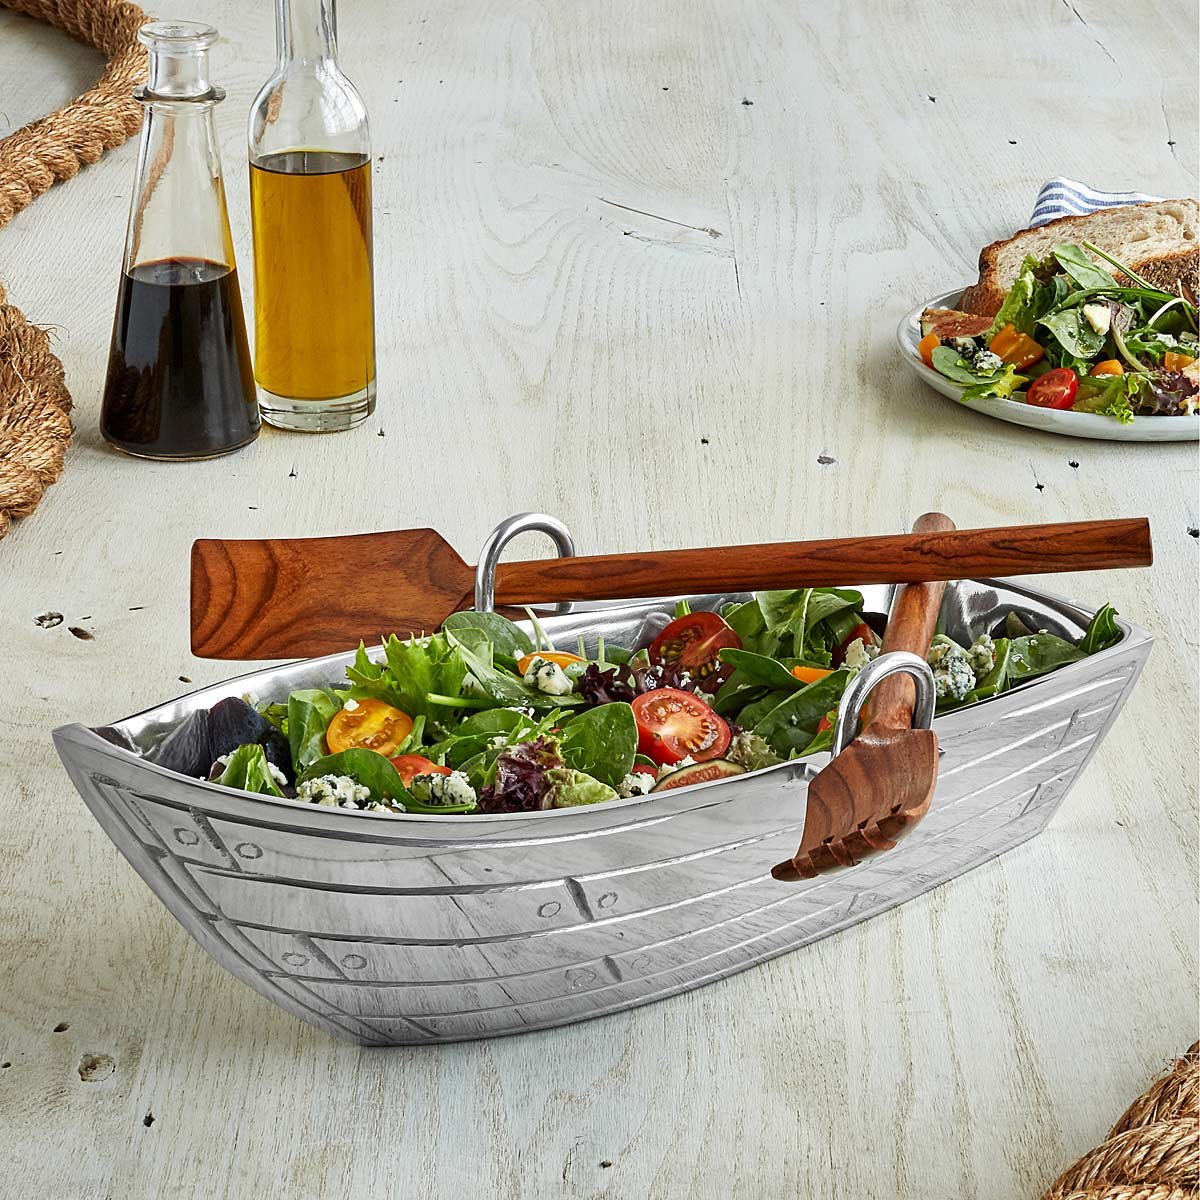 Row Boat Serving Bowl With Wood Serving Utensils 1 Thumbnail